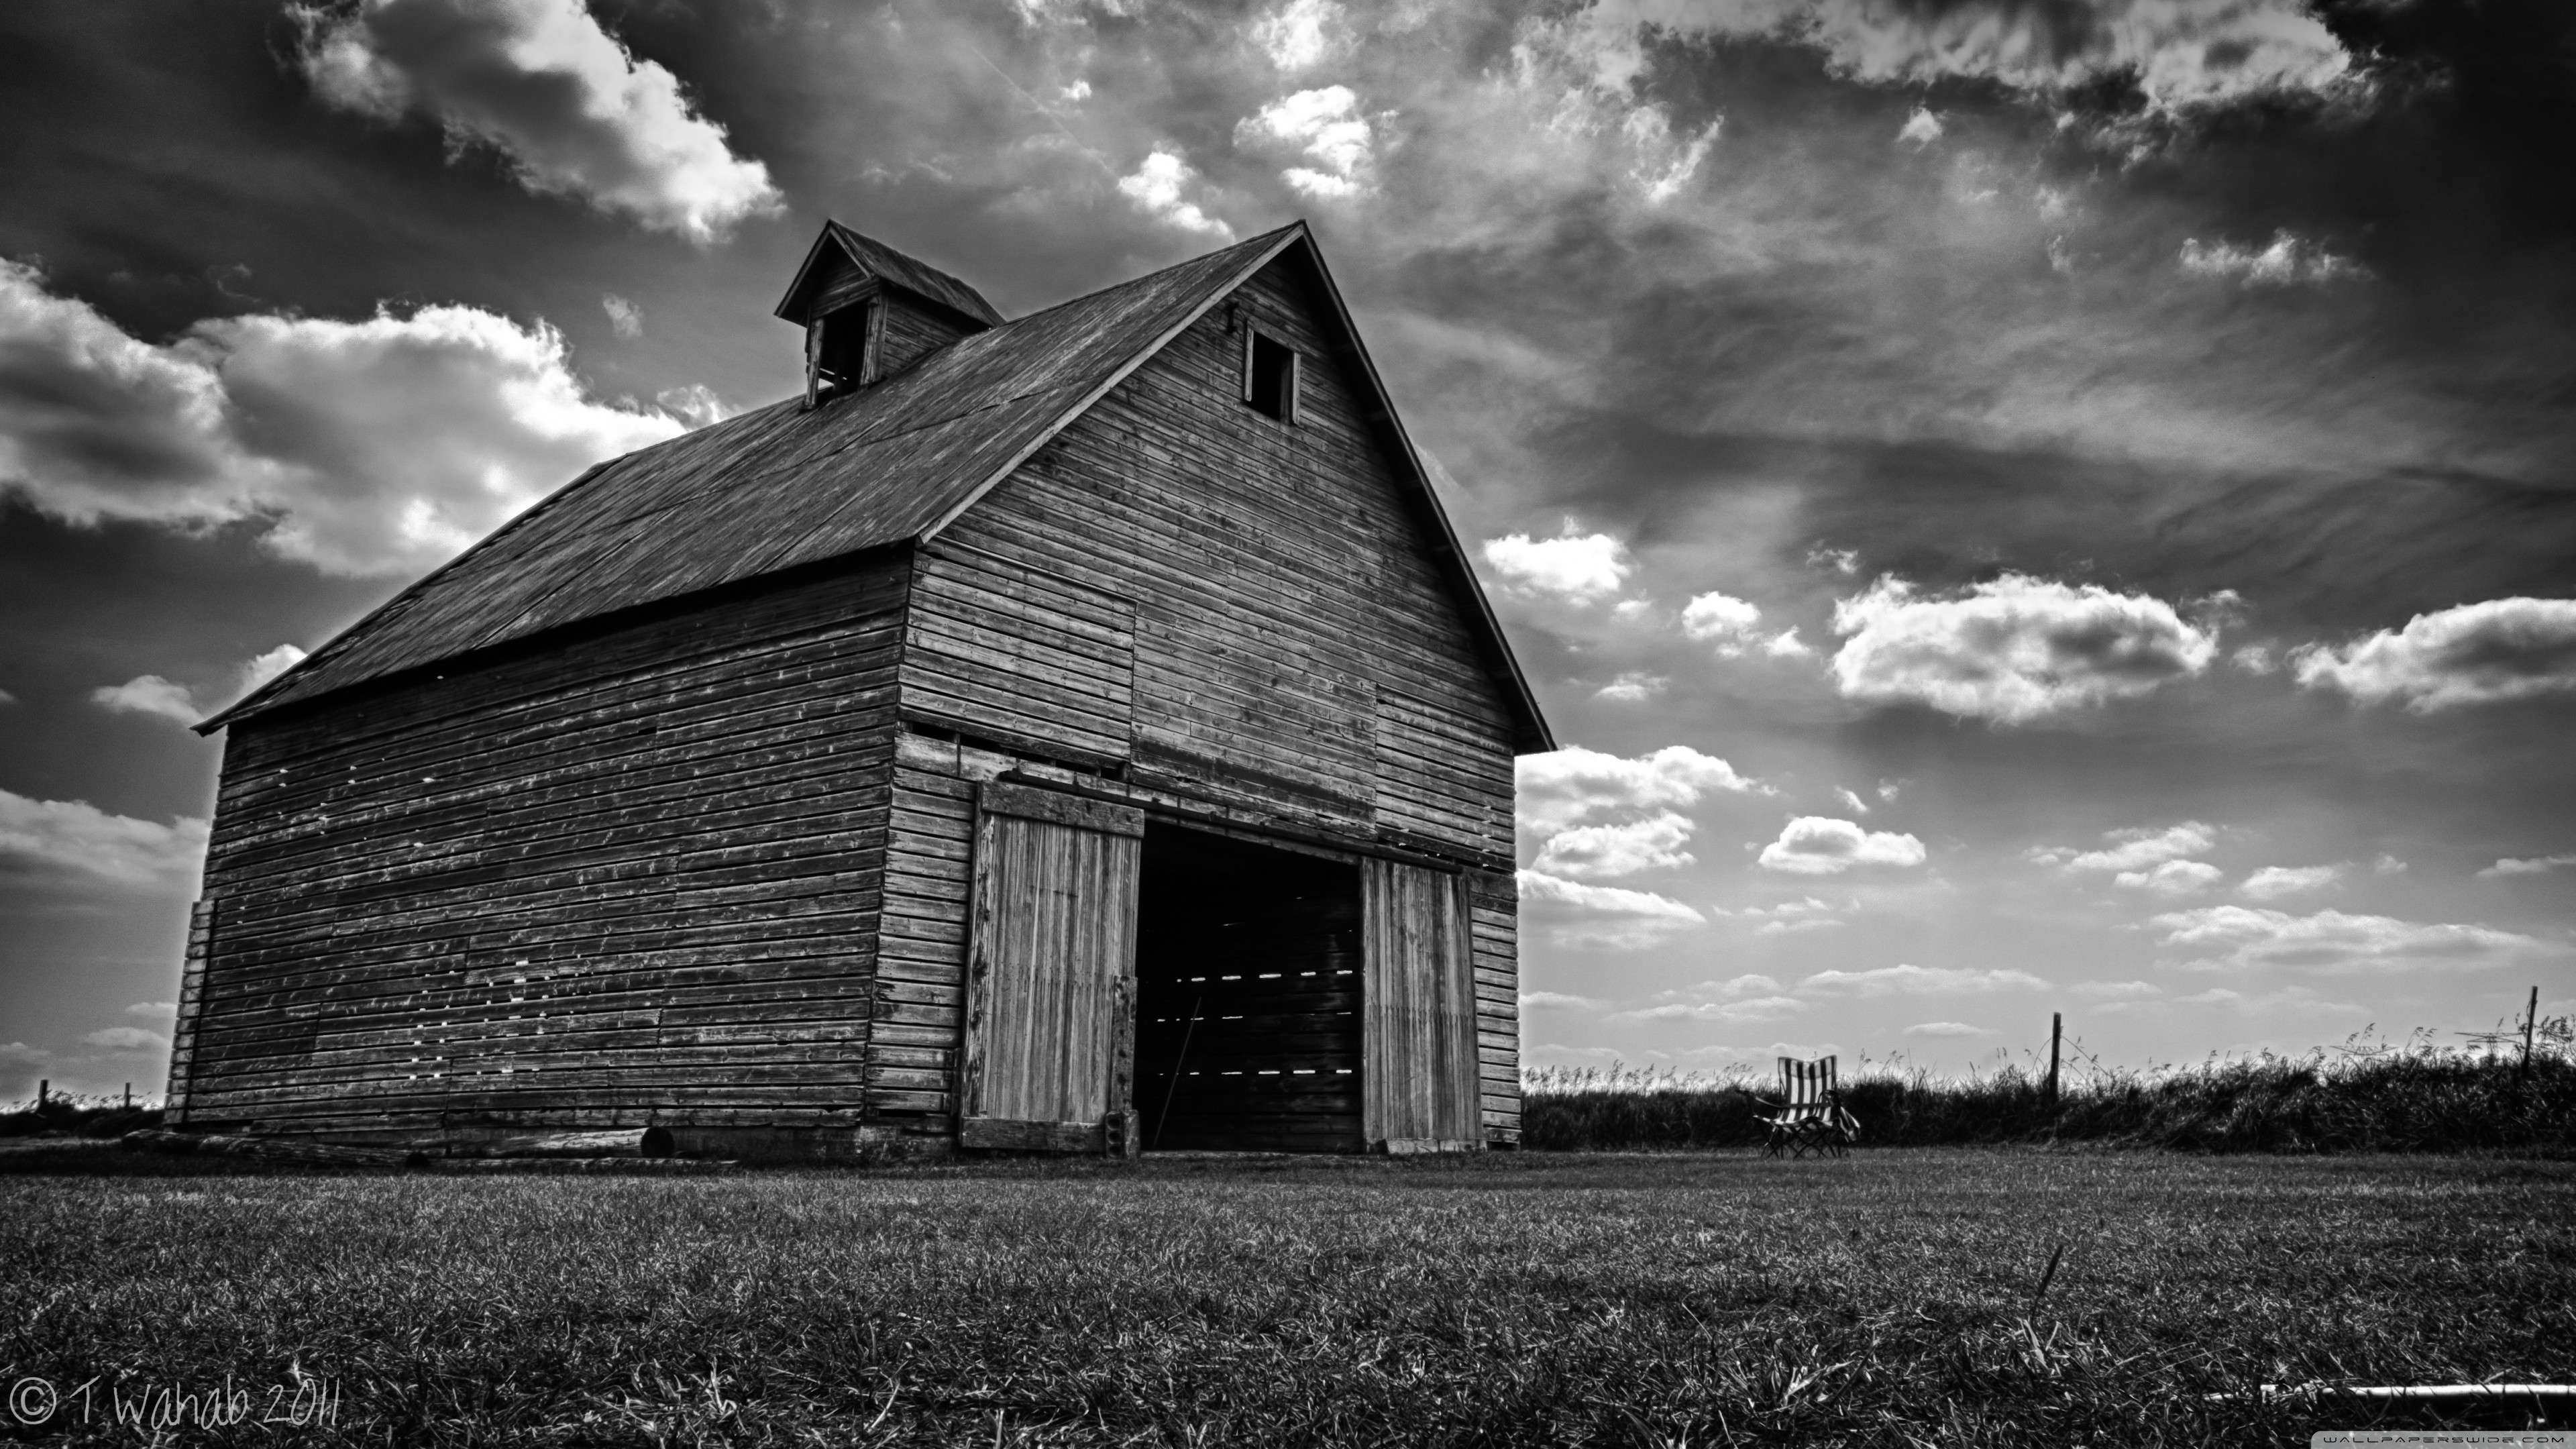 Data Src Vertical Old Barn Wallpaper For Lockscreen Old Barns 3840x2160 Download Hd Wallpaper Wallpapertip